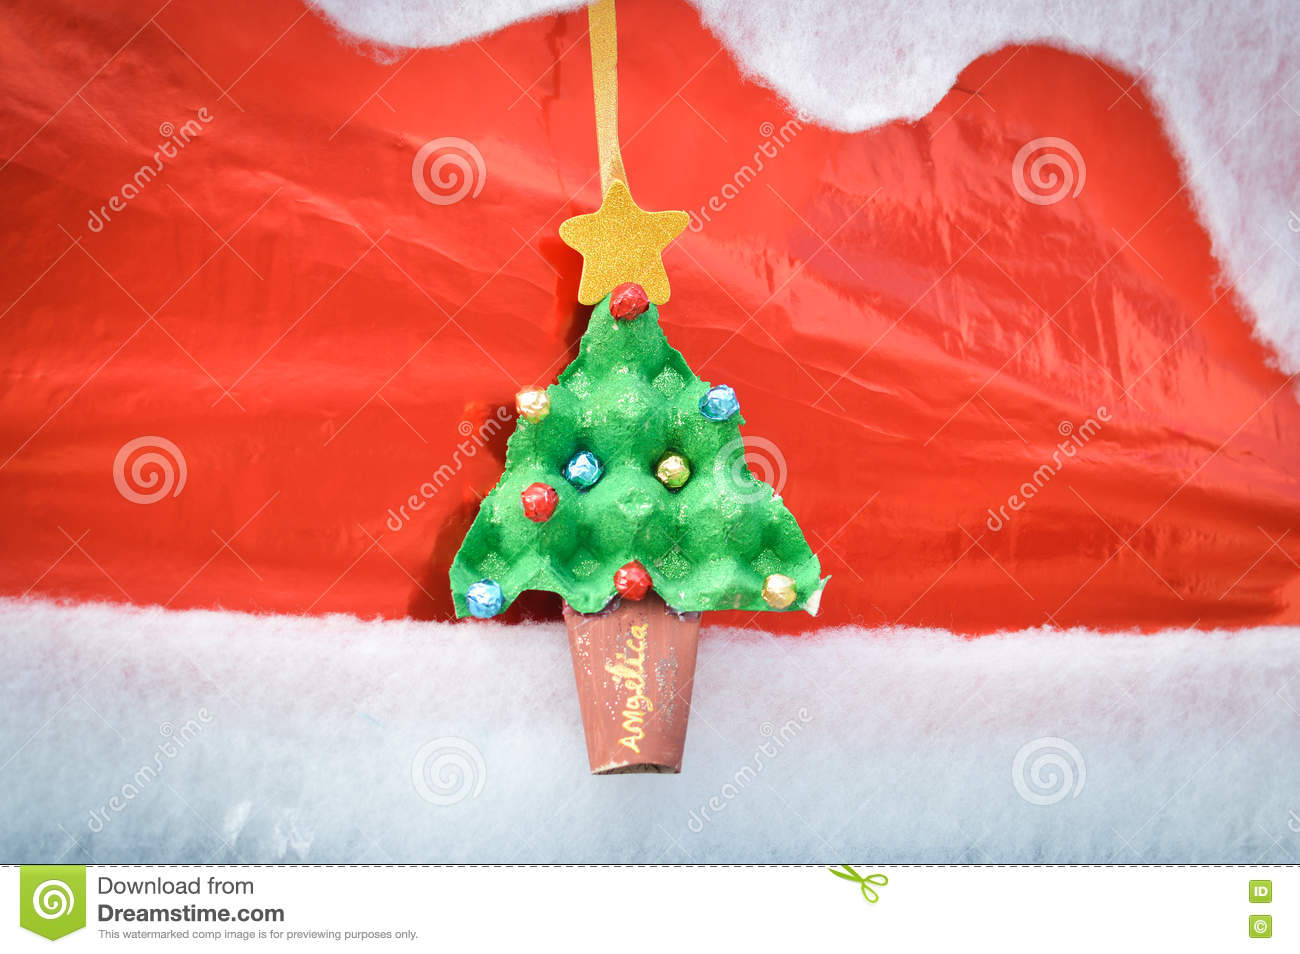 Christmas Tree Toys Handmade.Christmas Tree With Toys Handmade On A Red Background Stock